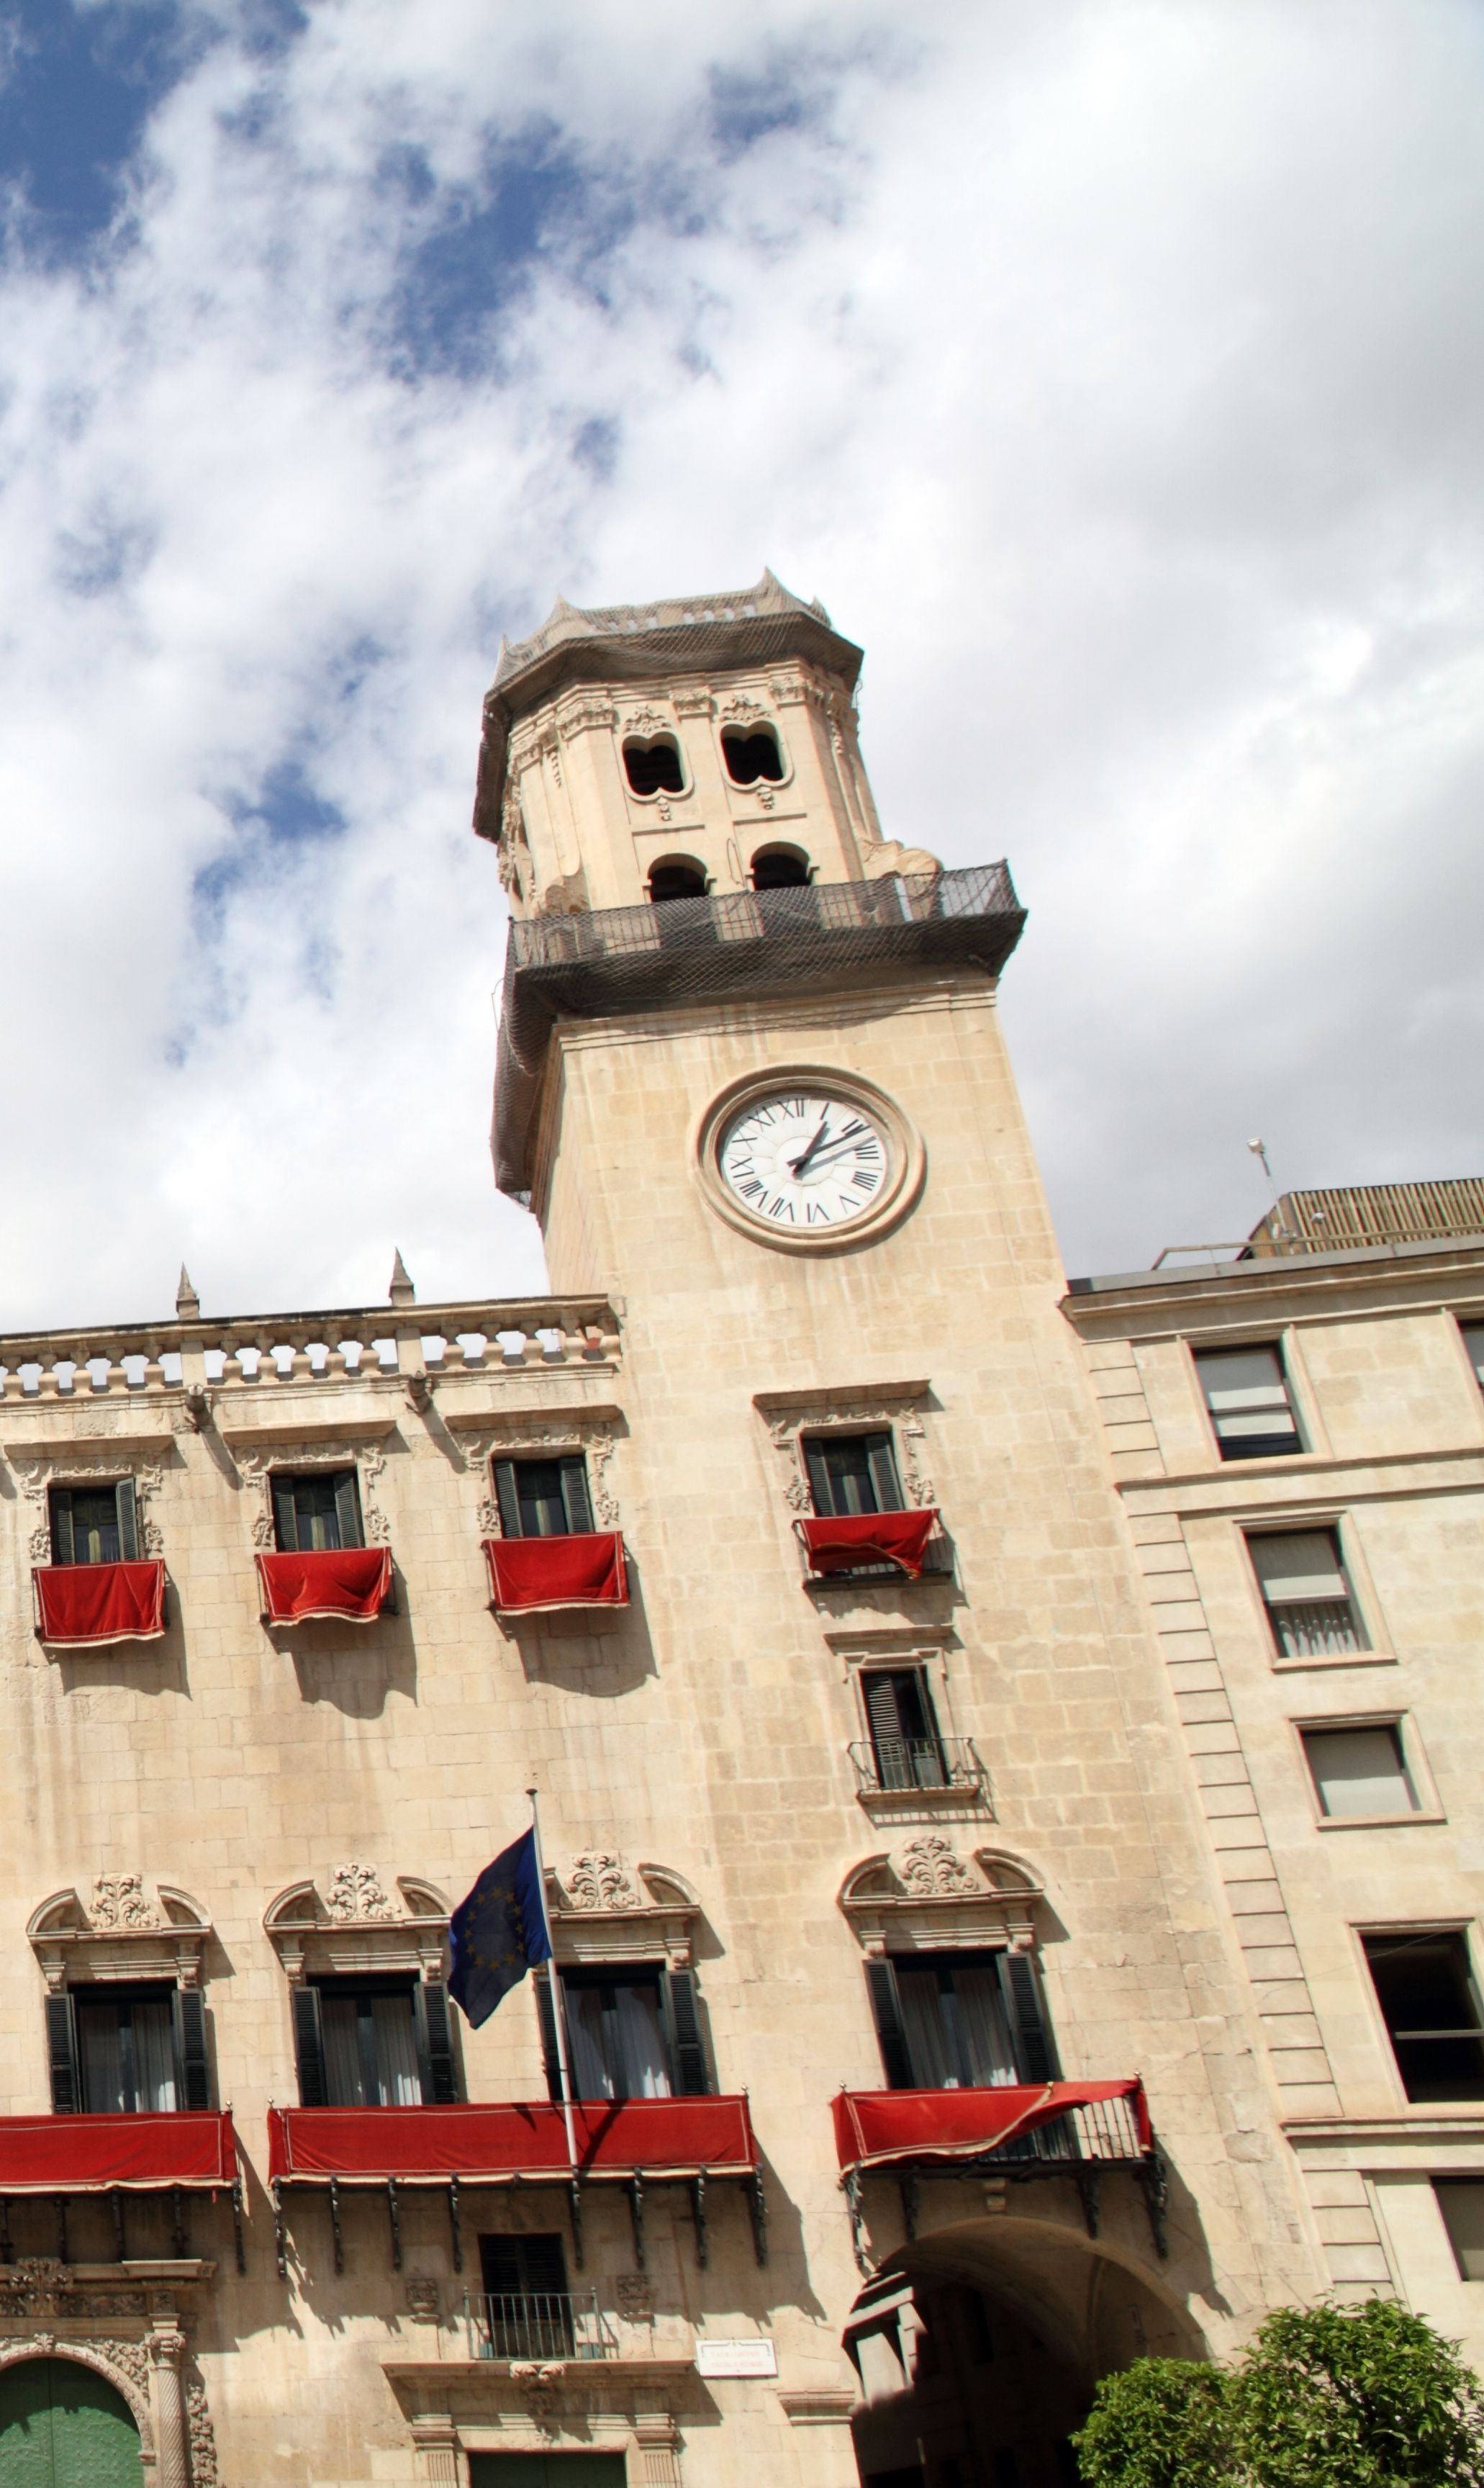 Clock tower of city hall in Alicante, Spain